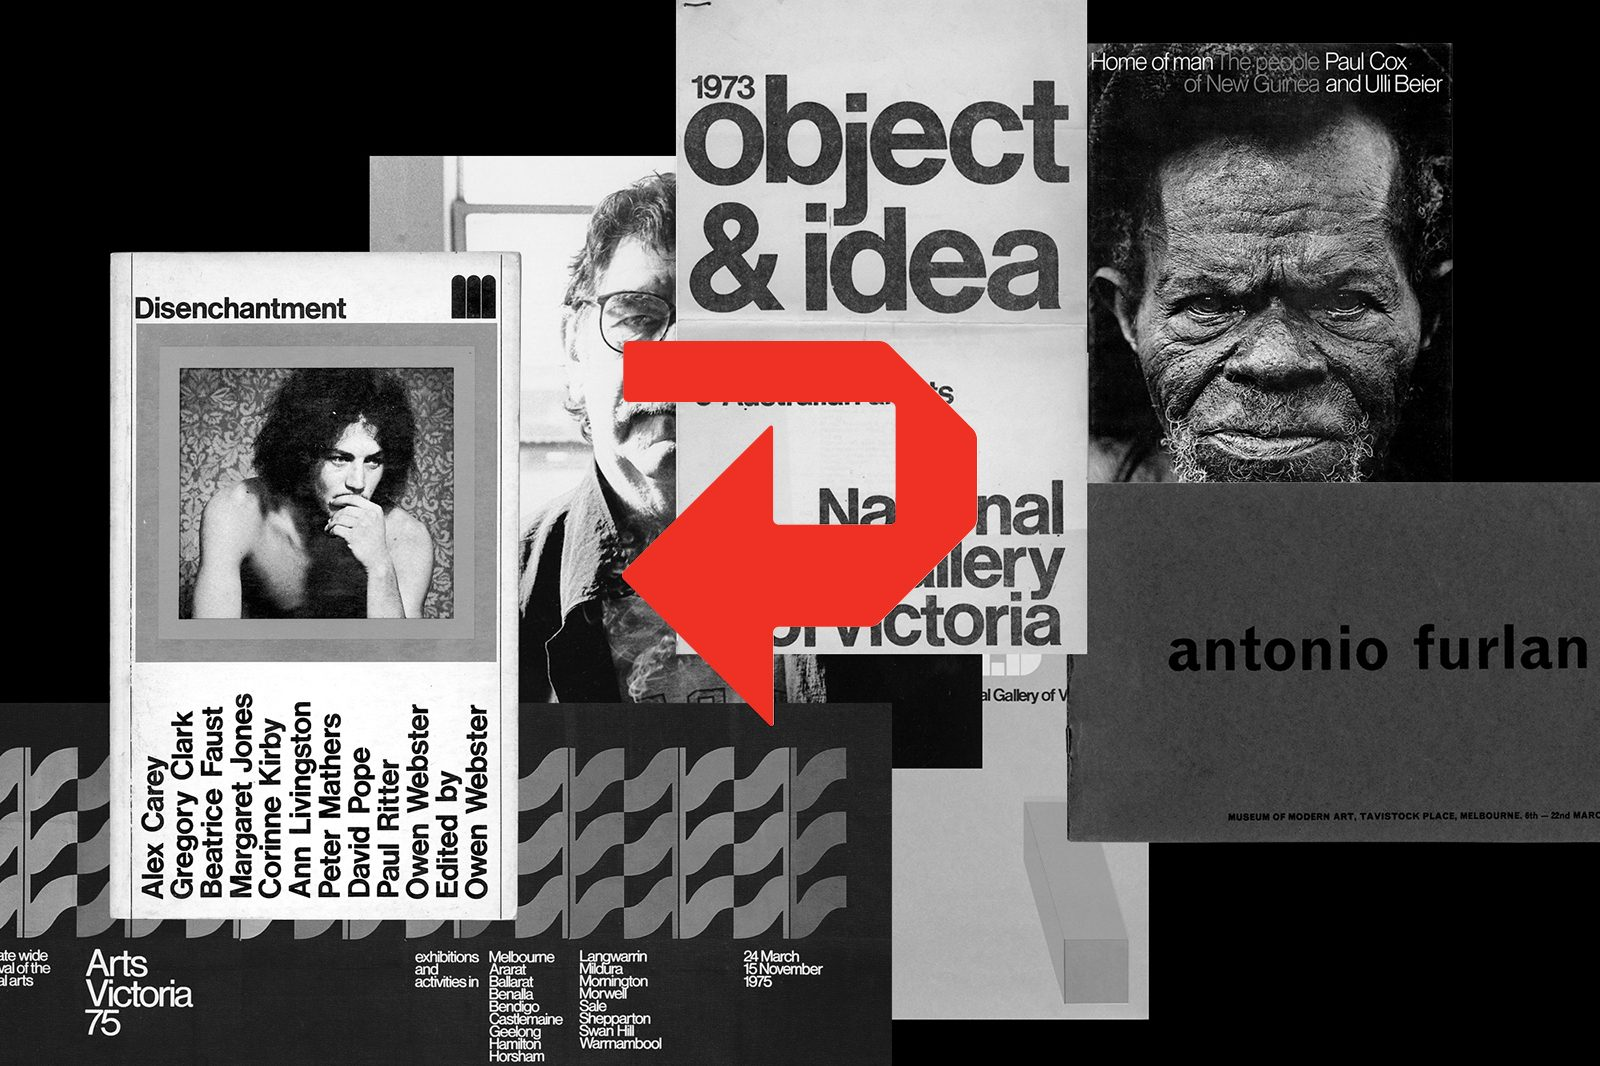 Design revisited: Graphic design Re:collection